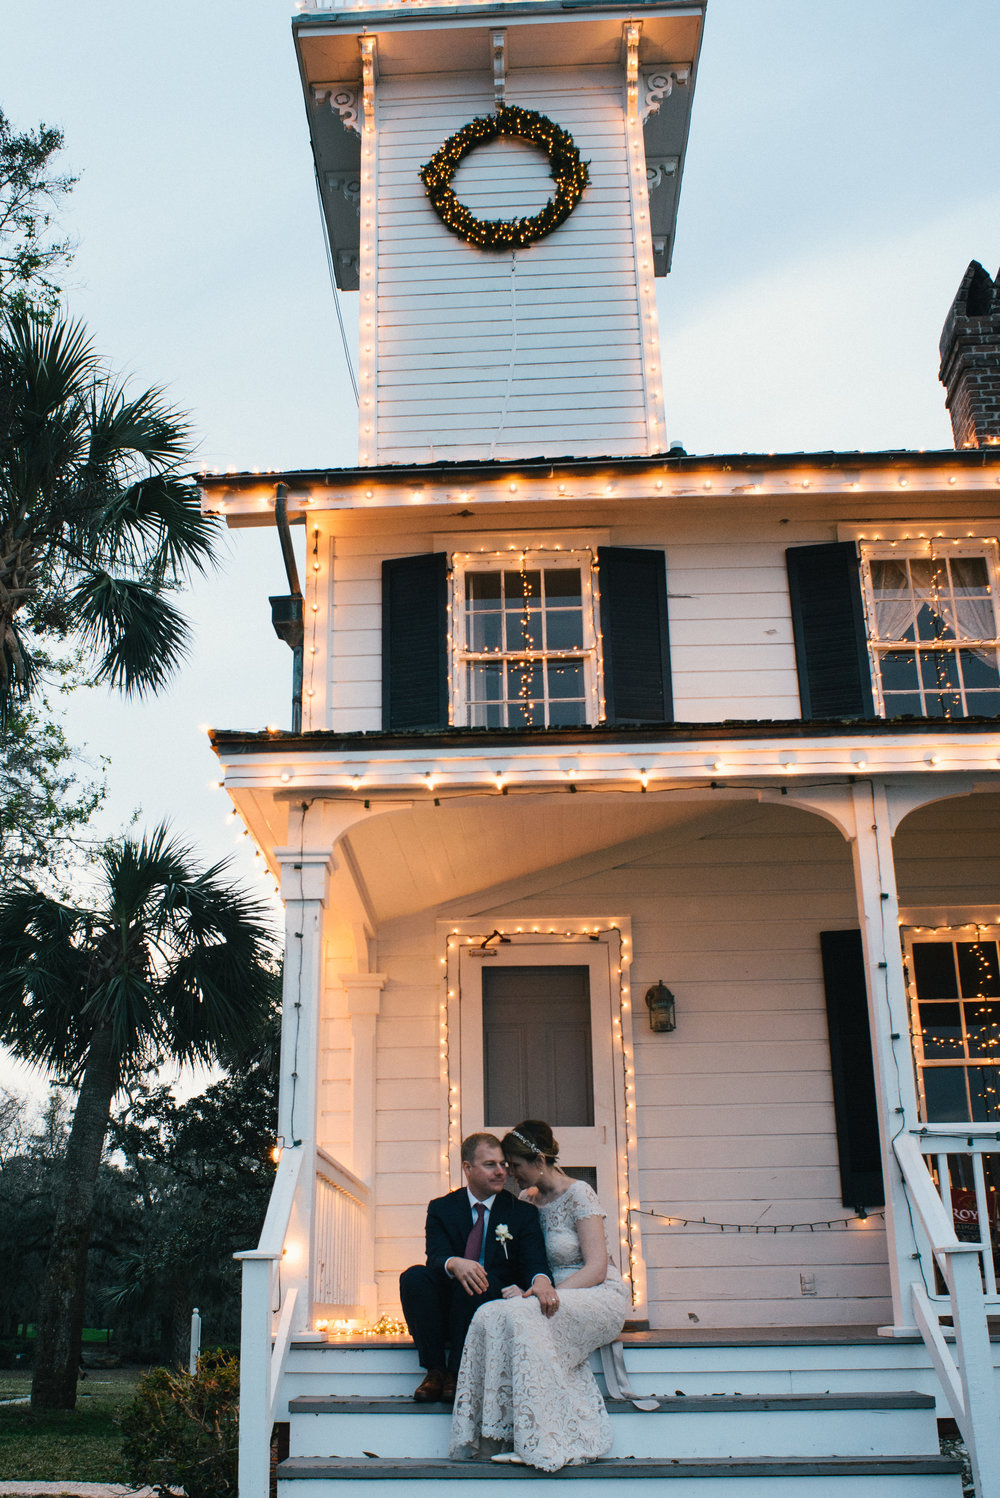 emily-and-david-daufuskie-island-wedding-december-wedding-meg-hill-photo- (186 of 728).jpg